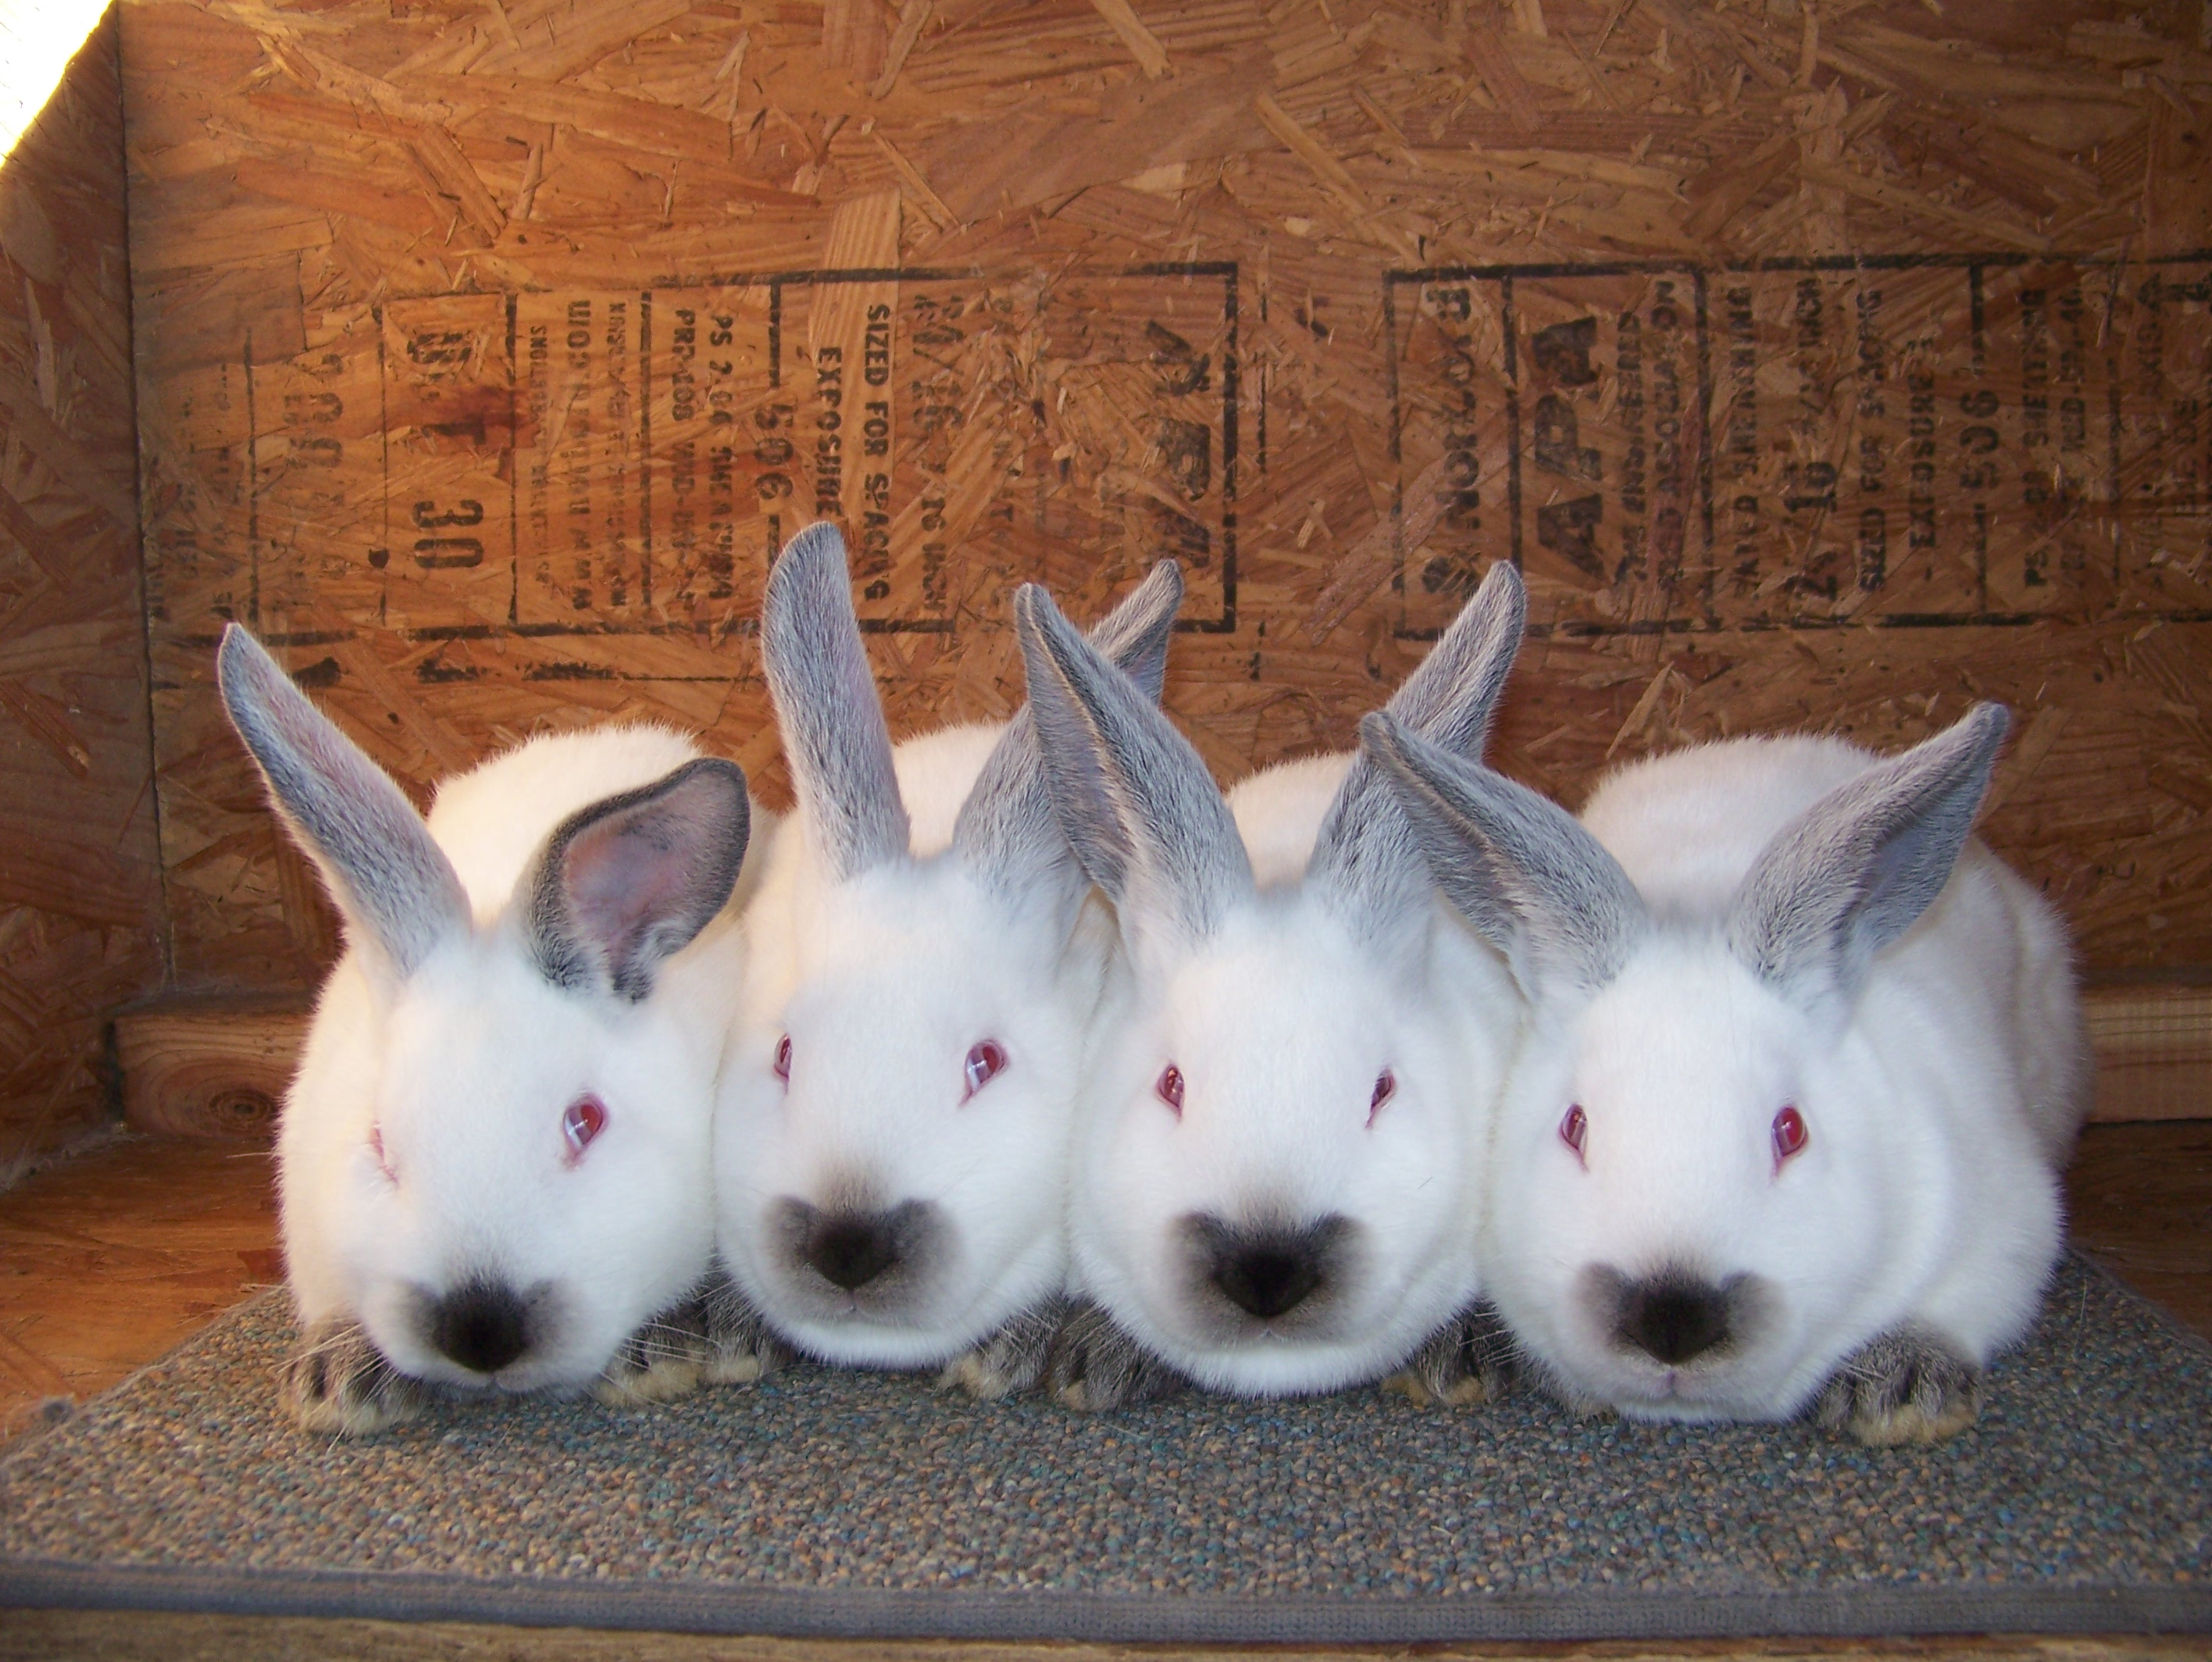 sale meat rabbits for sale meat rabbits for sale meat rabbits for sale ...